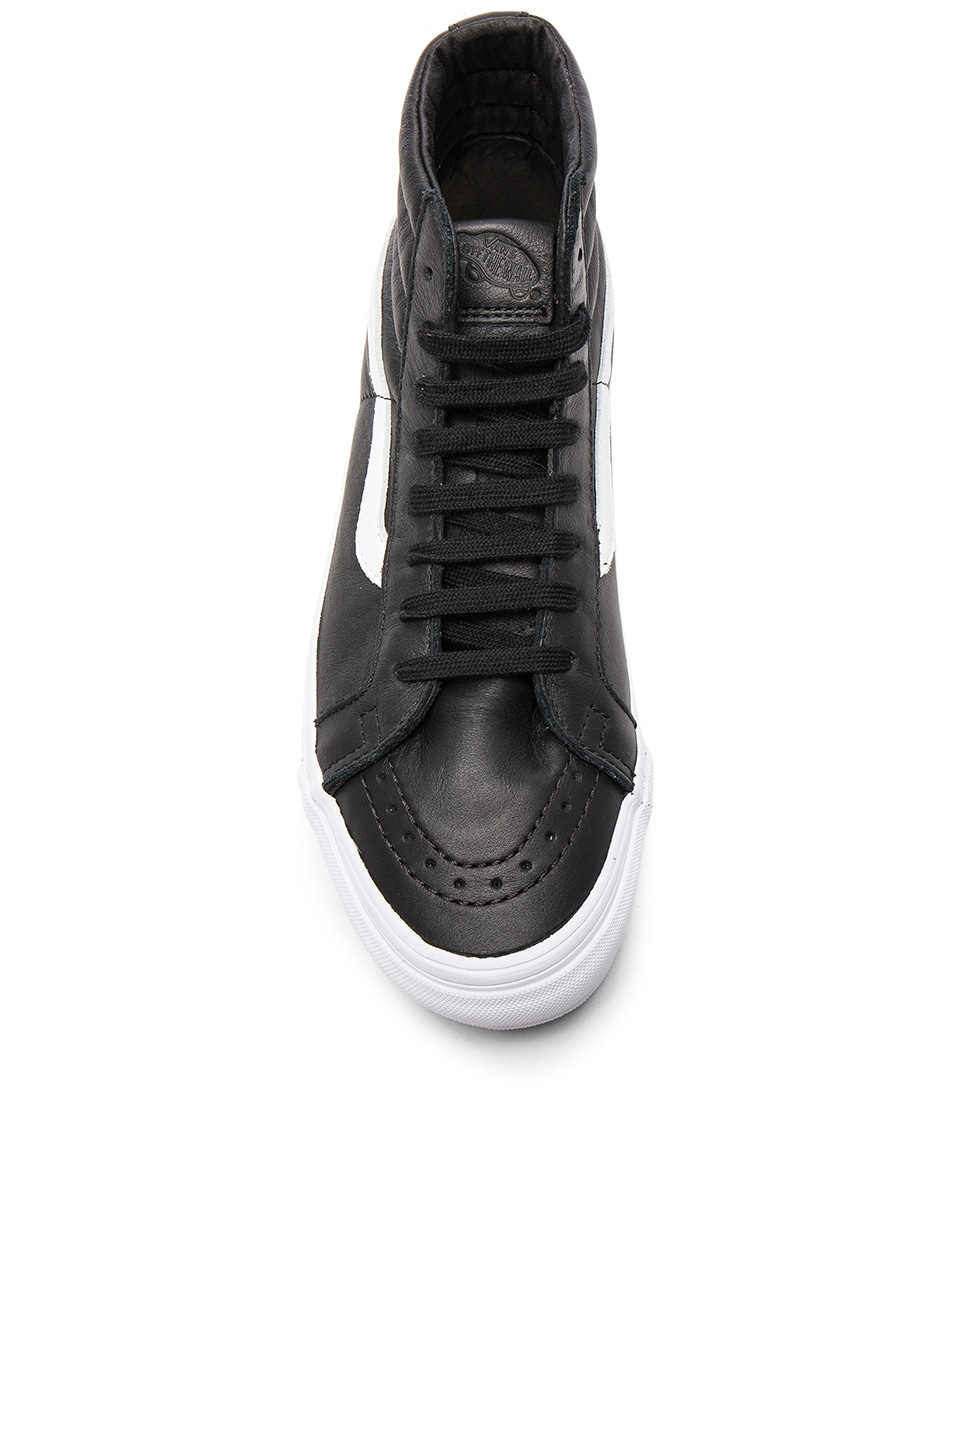 Image 4 of Vans Vault OG Leather SK8-HI LX in Black